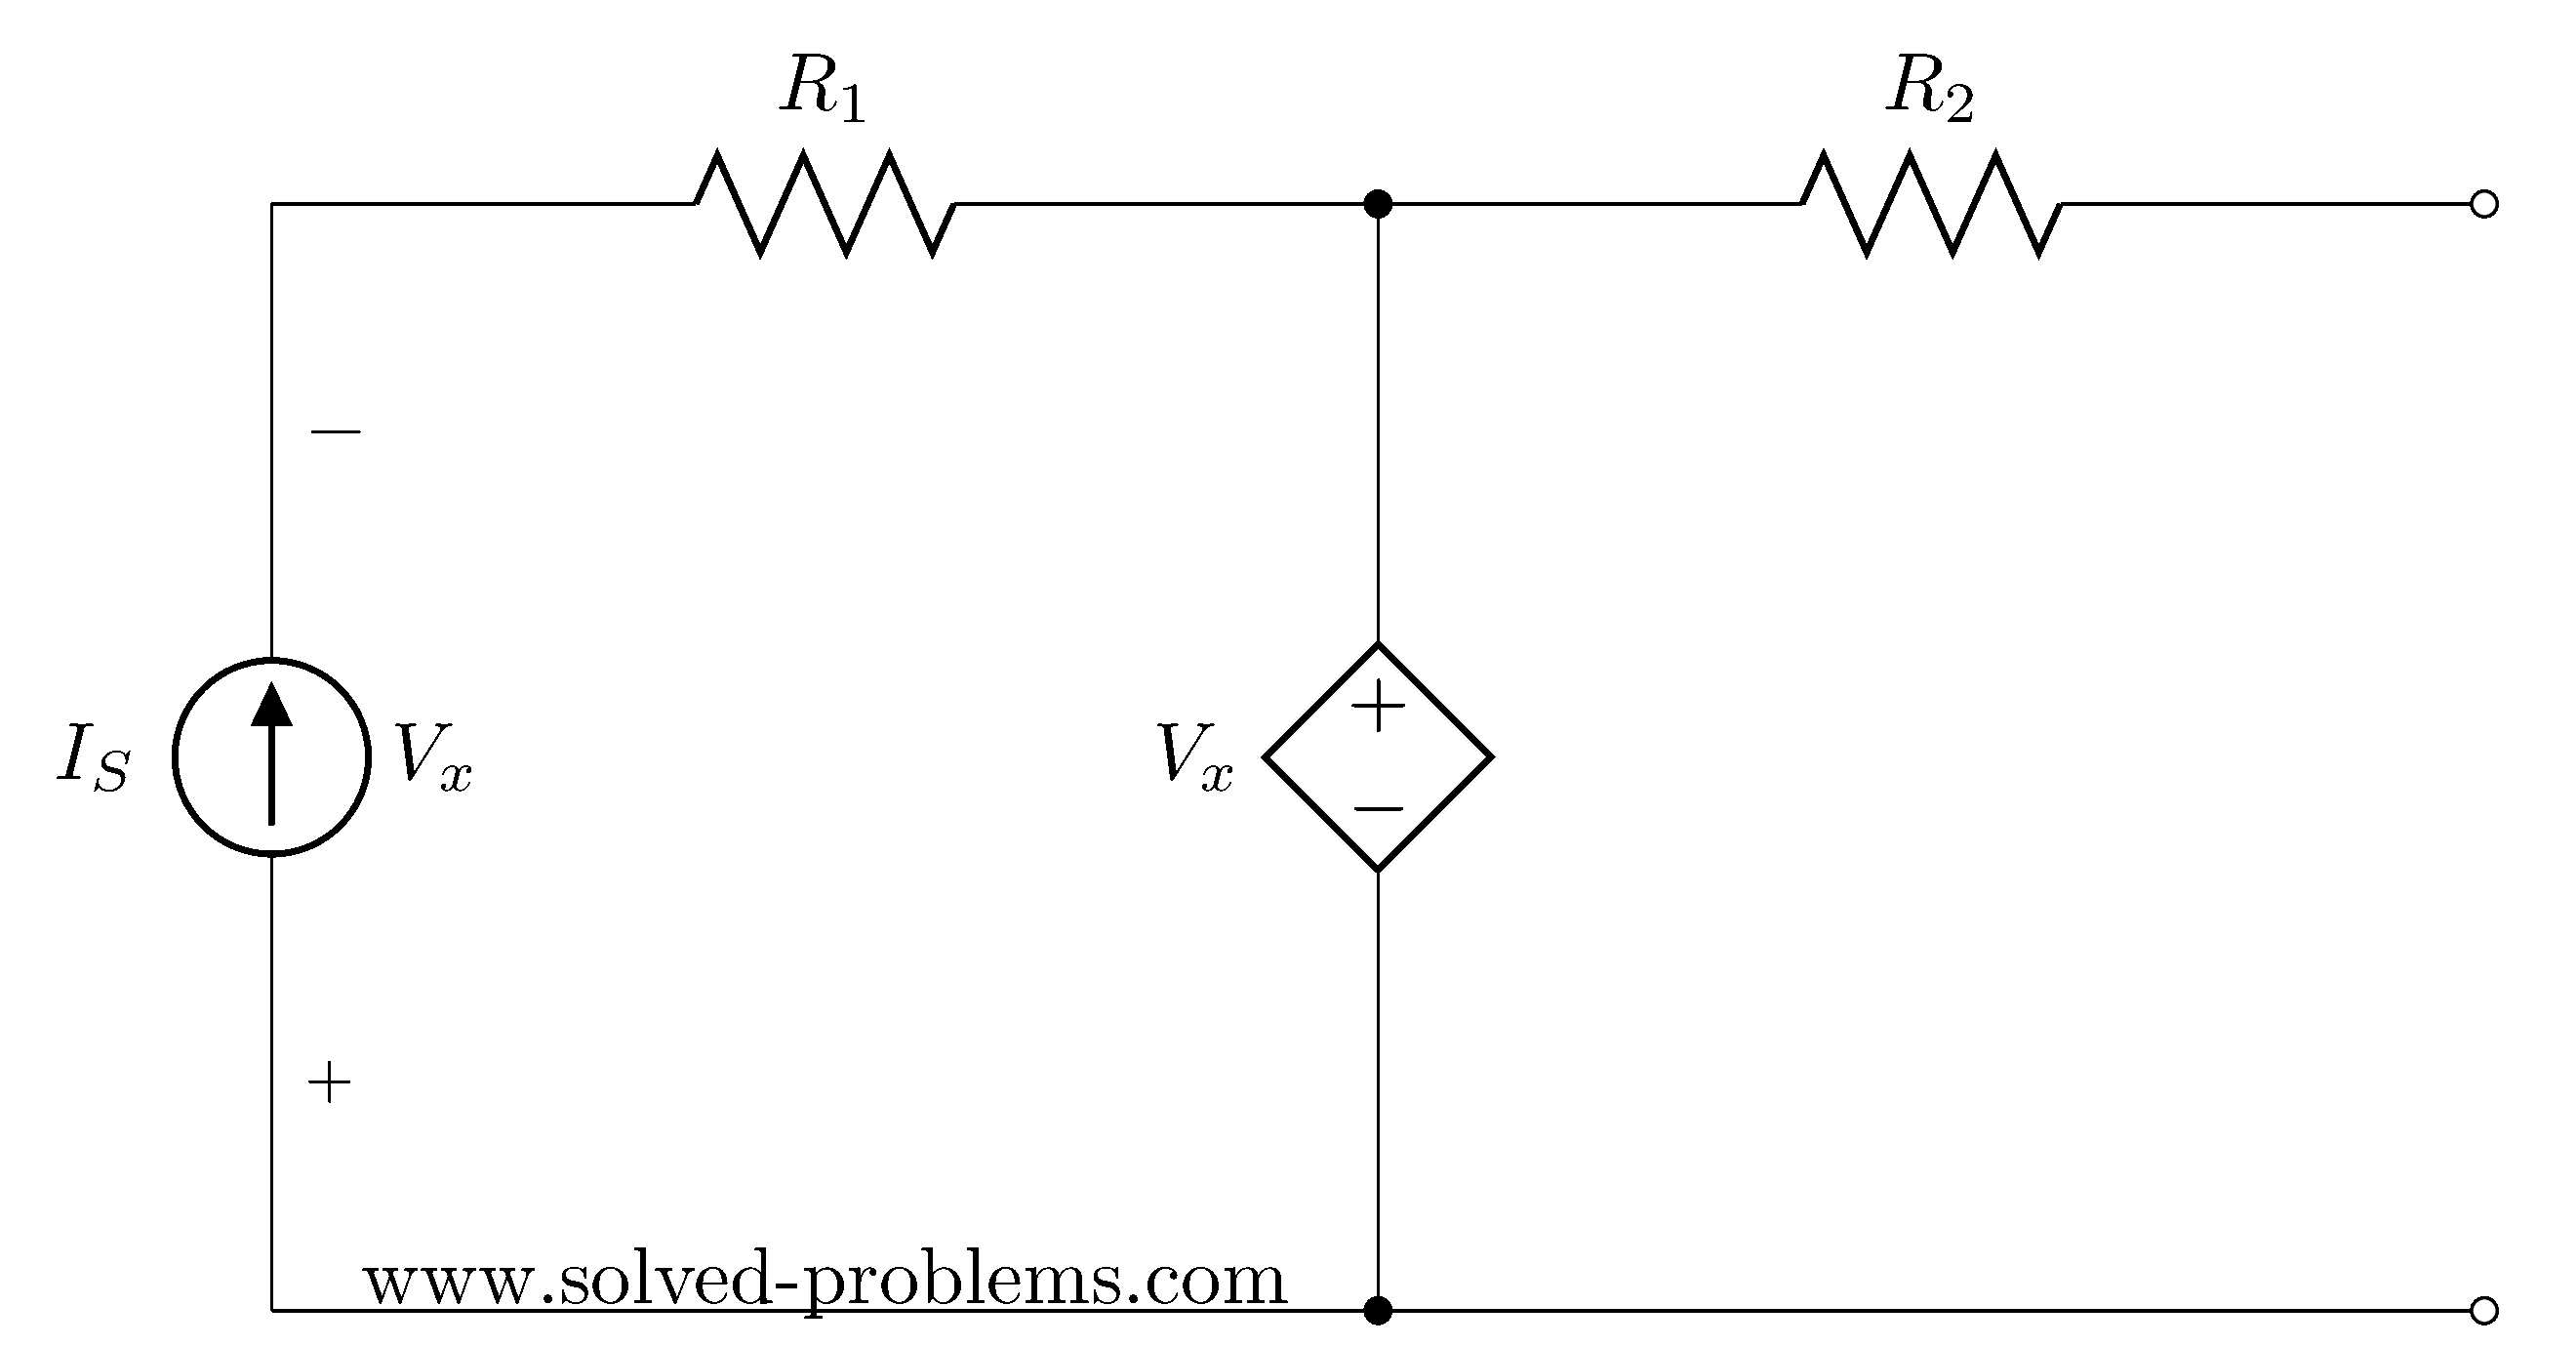 Solved Problems A Source Of Free Ac Dc Theory Circuits 1254 1